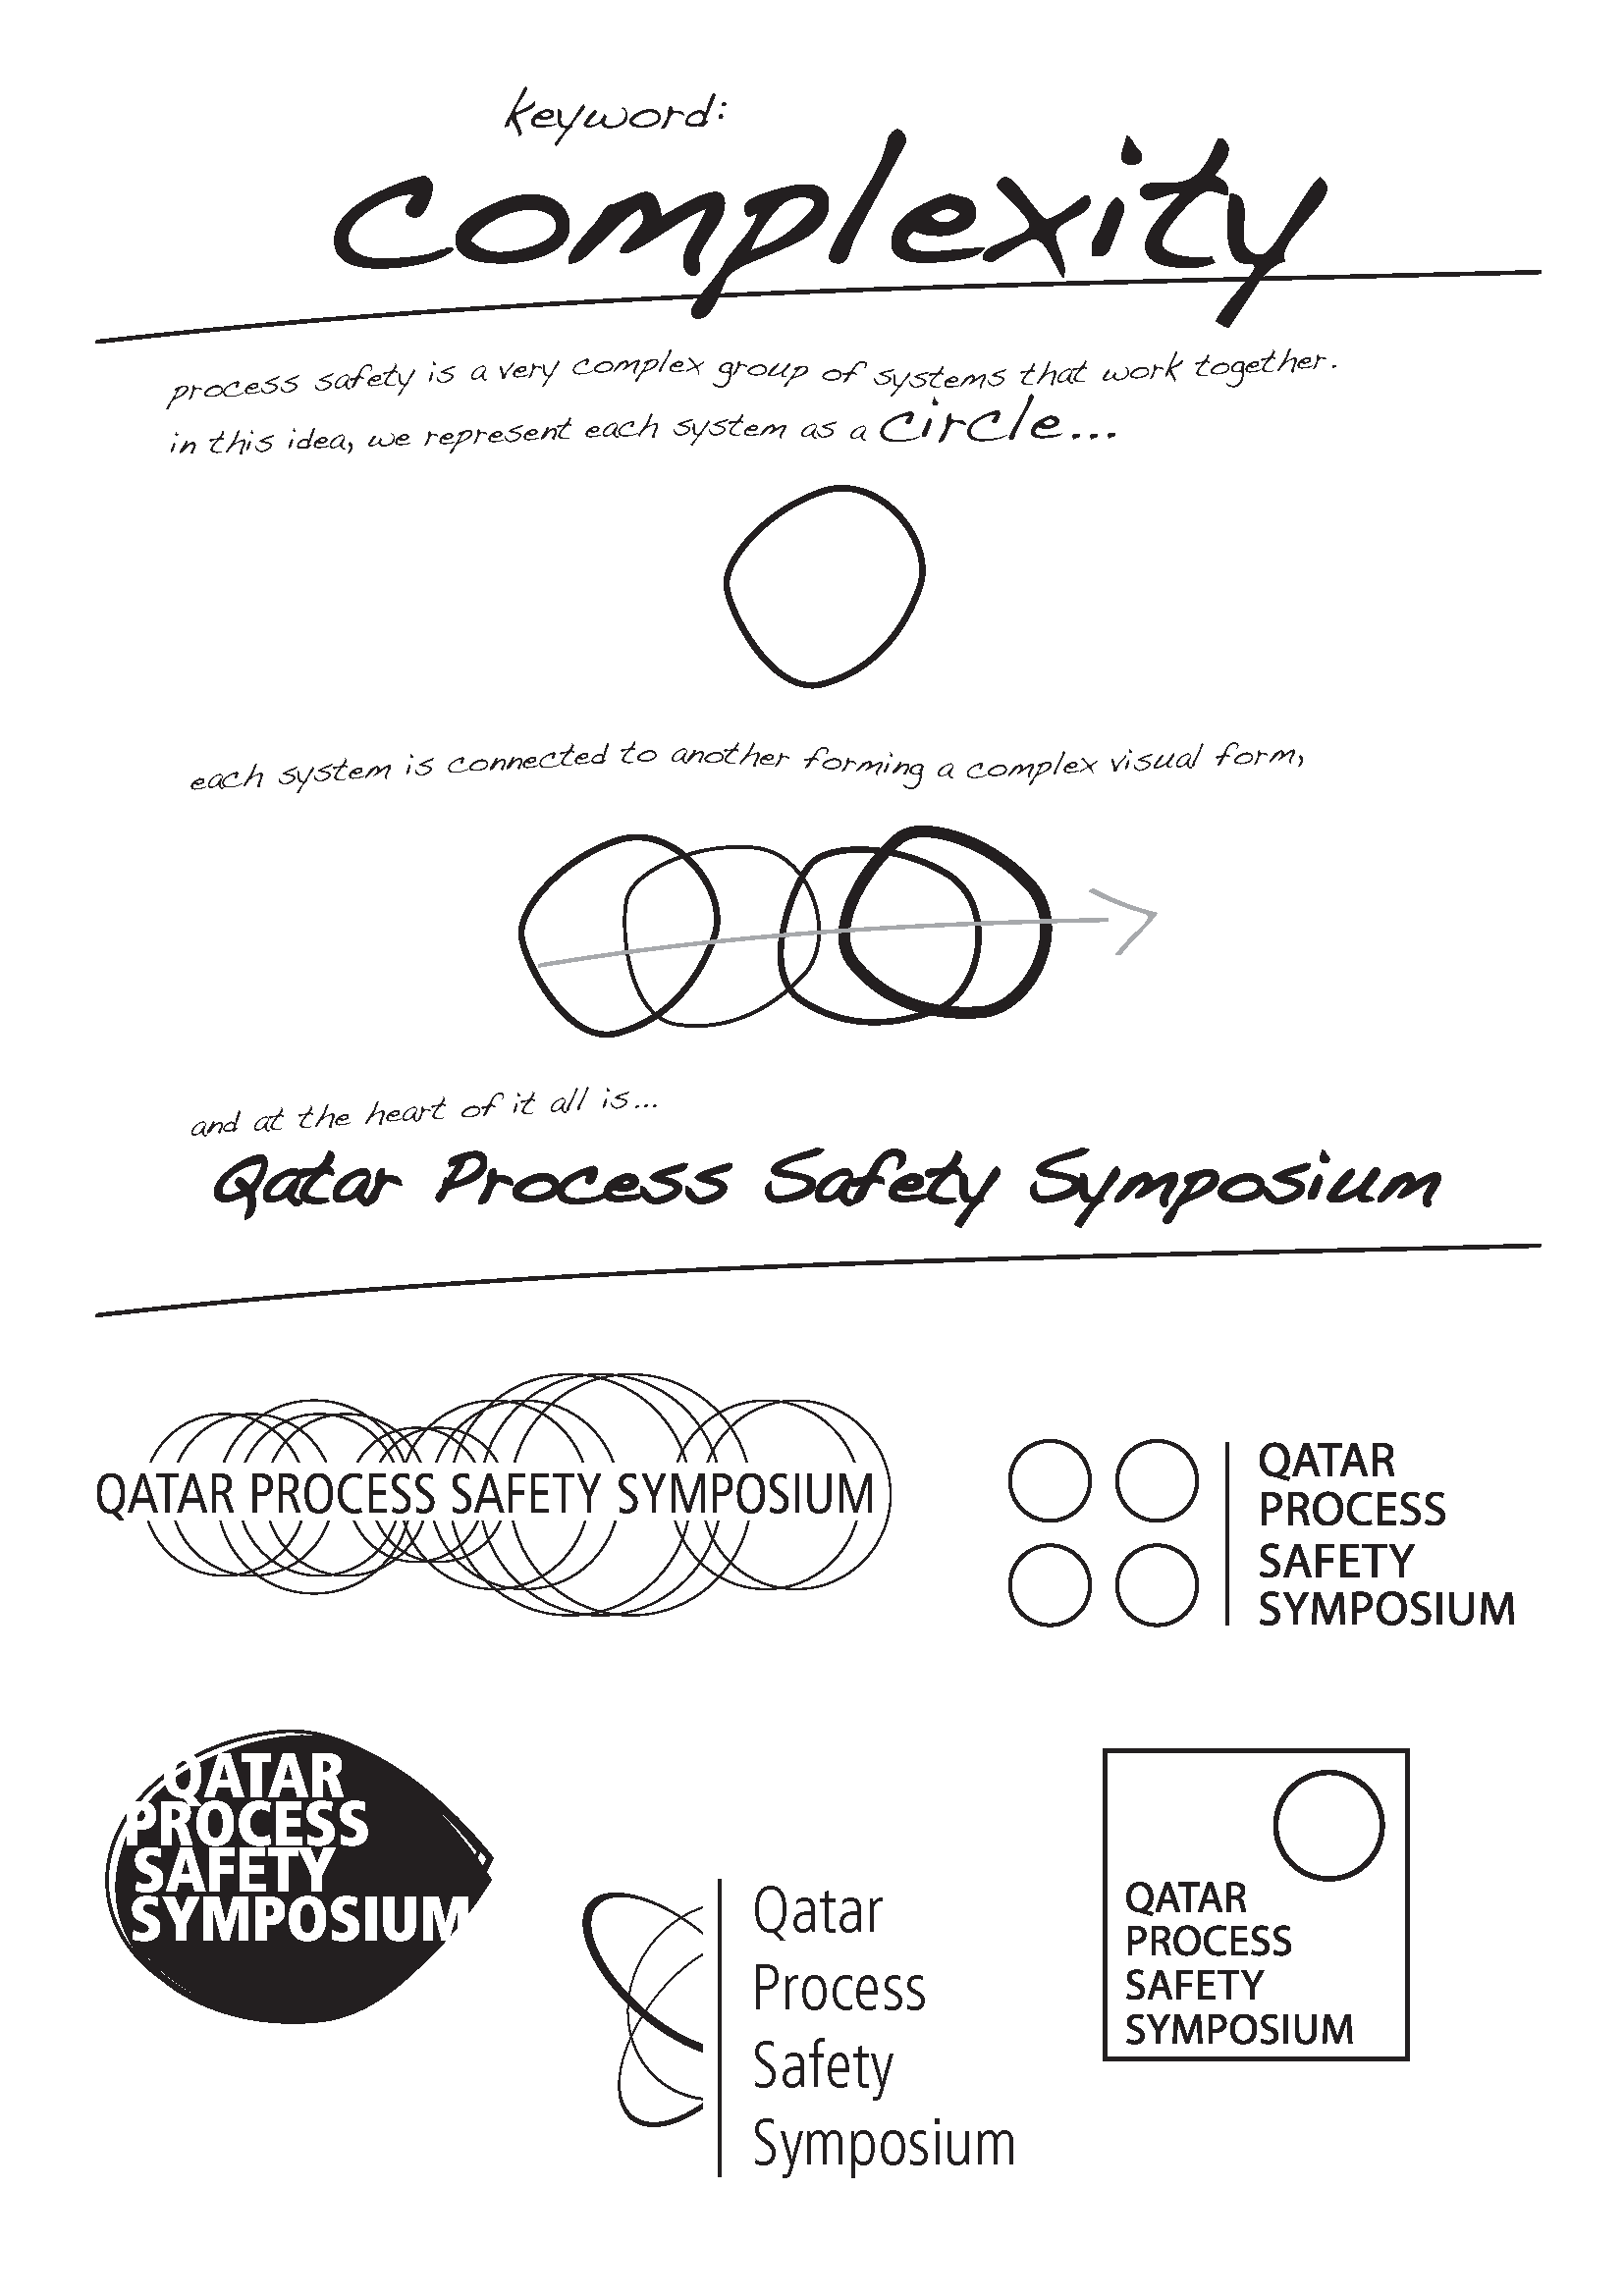 QPSS Creative Orientation in Sketches Presentation_Page_4.png